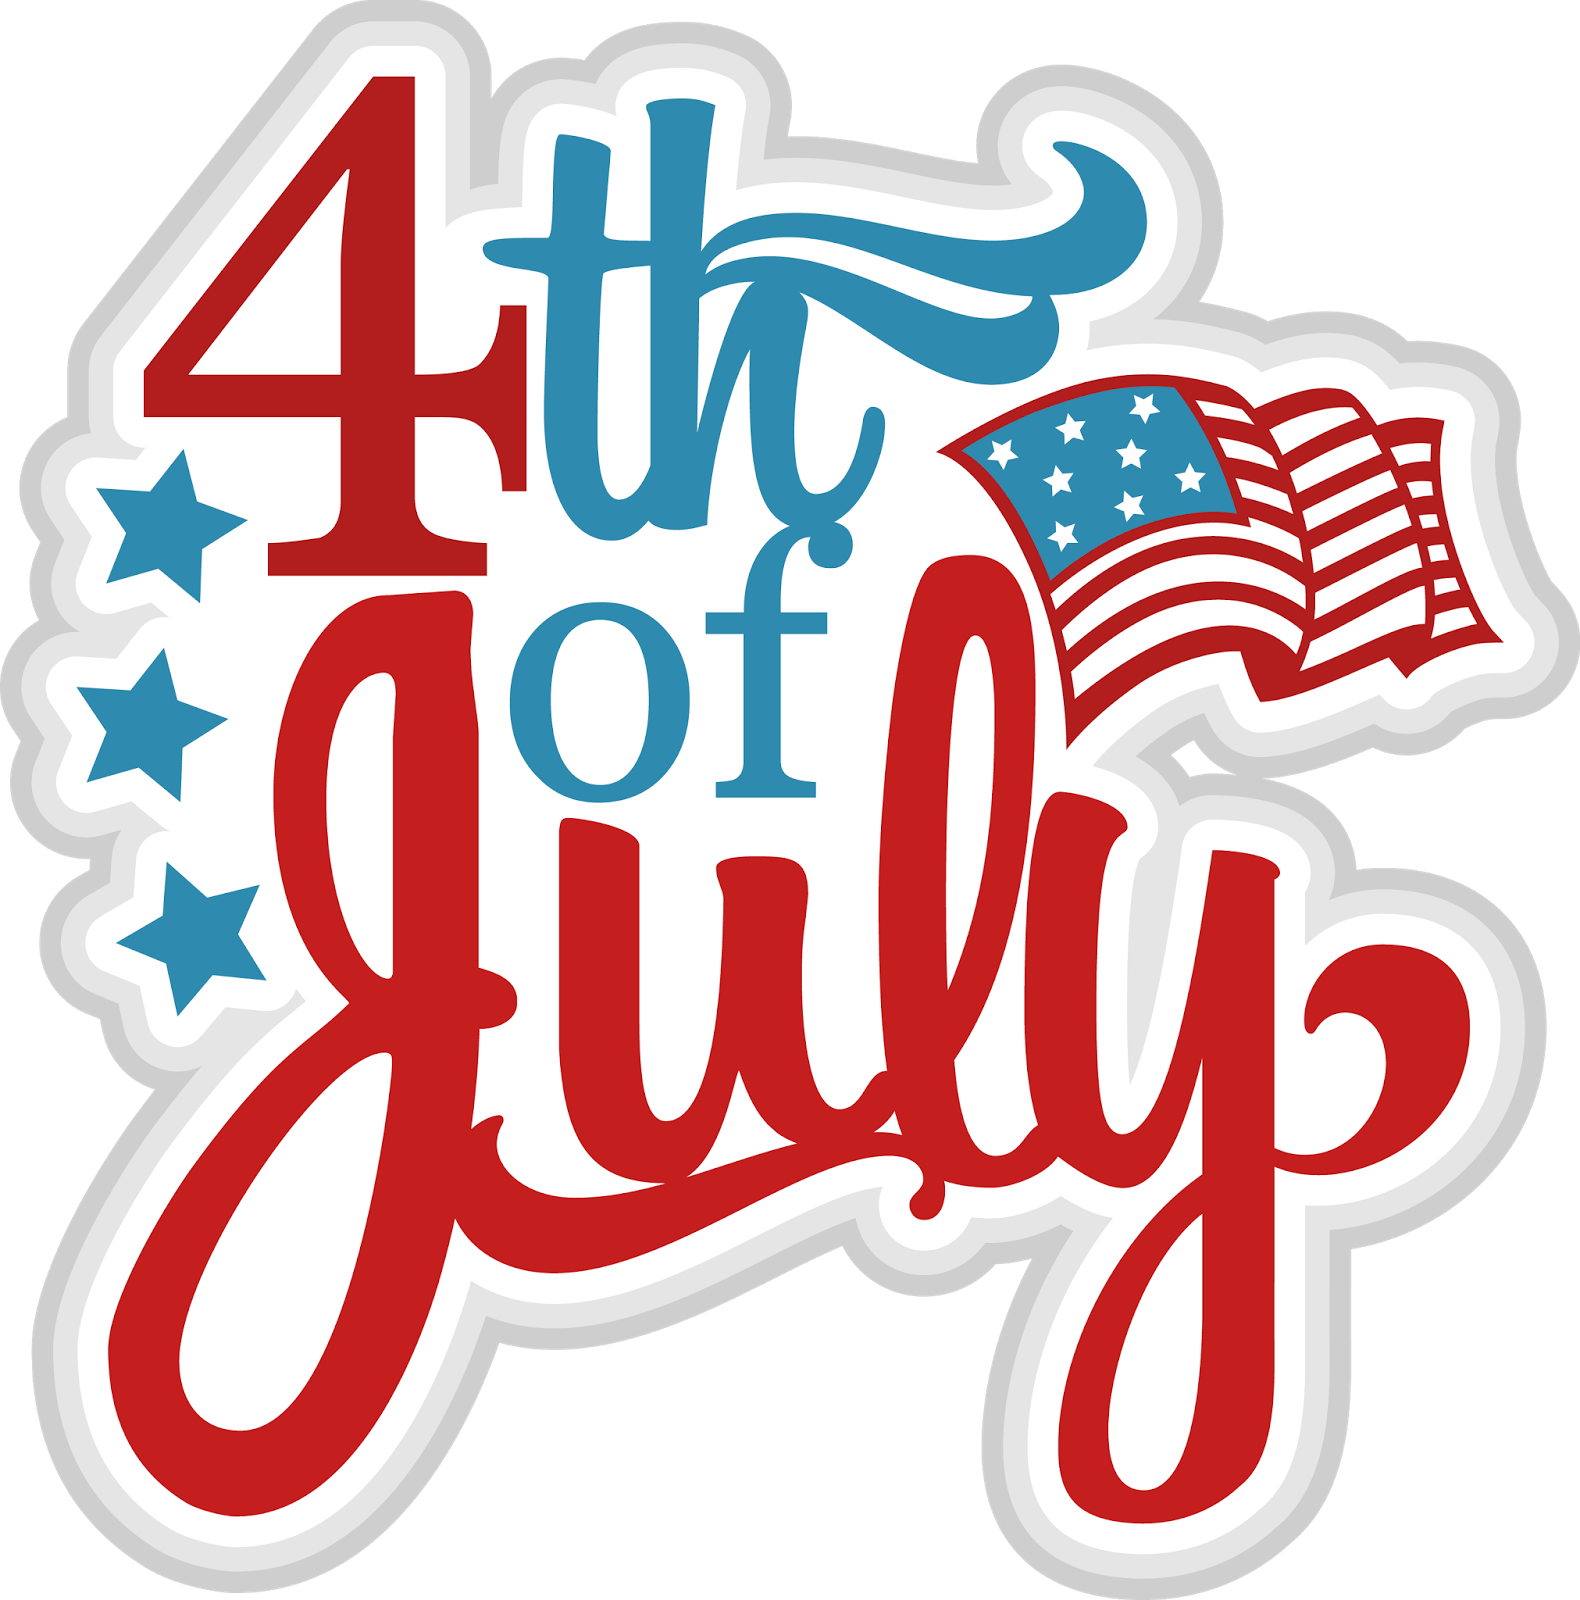 4th Of July Clipart Images In 2020 4th Of July Clipart 4th Of July Images July Images